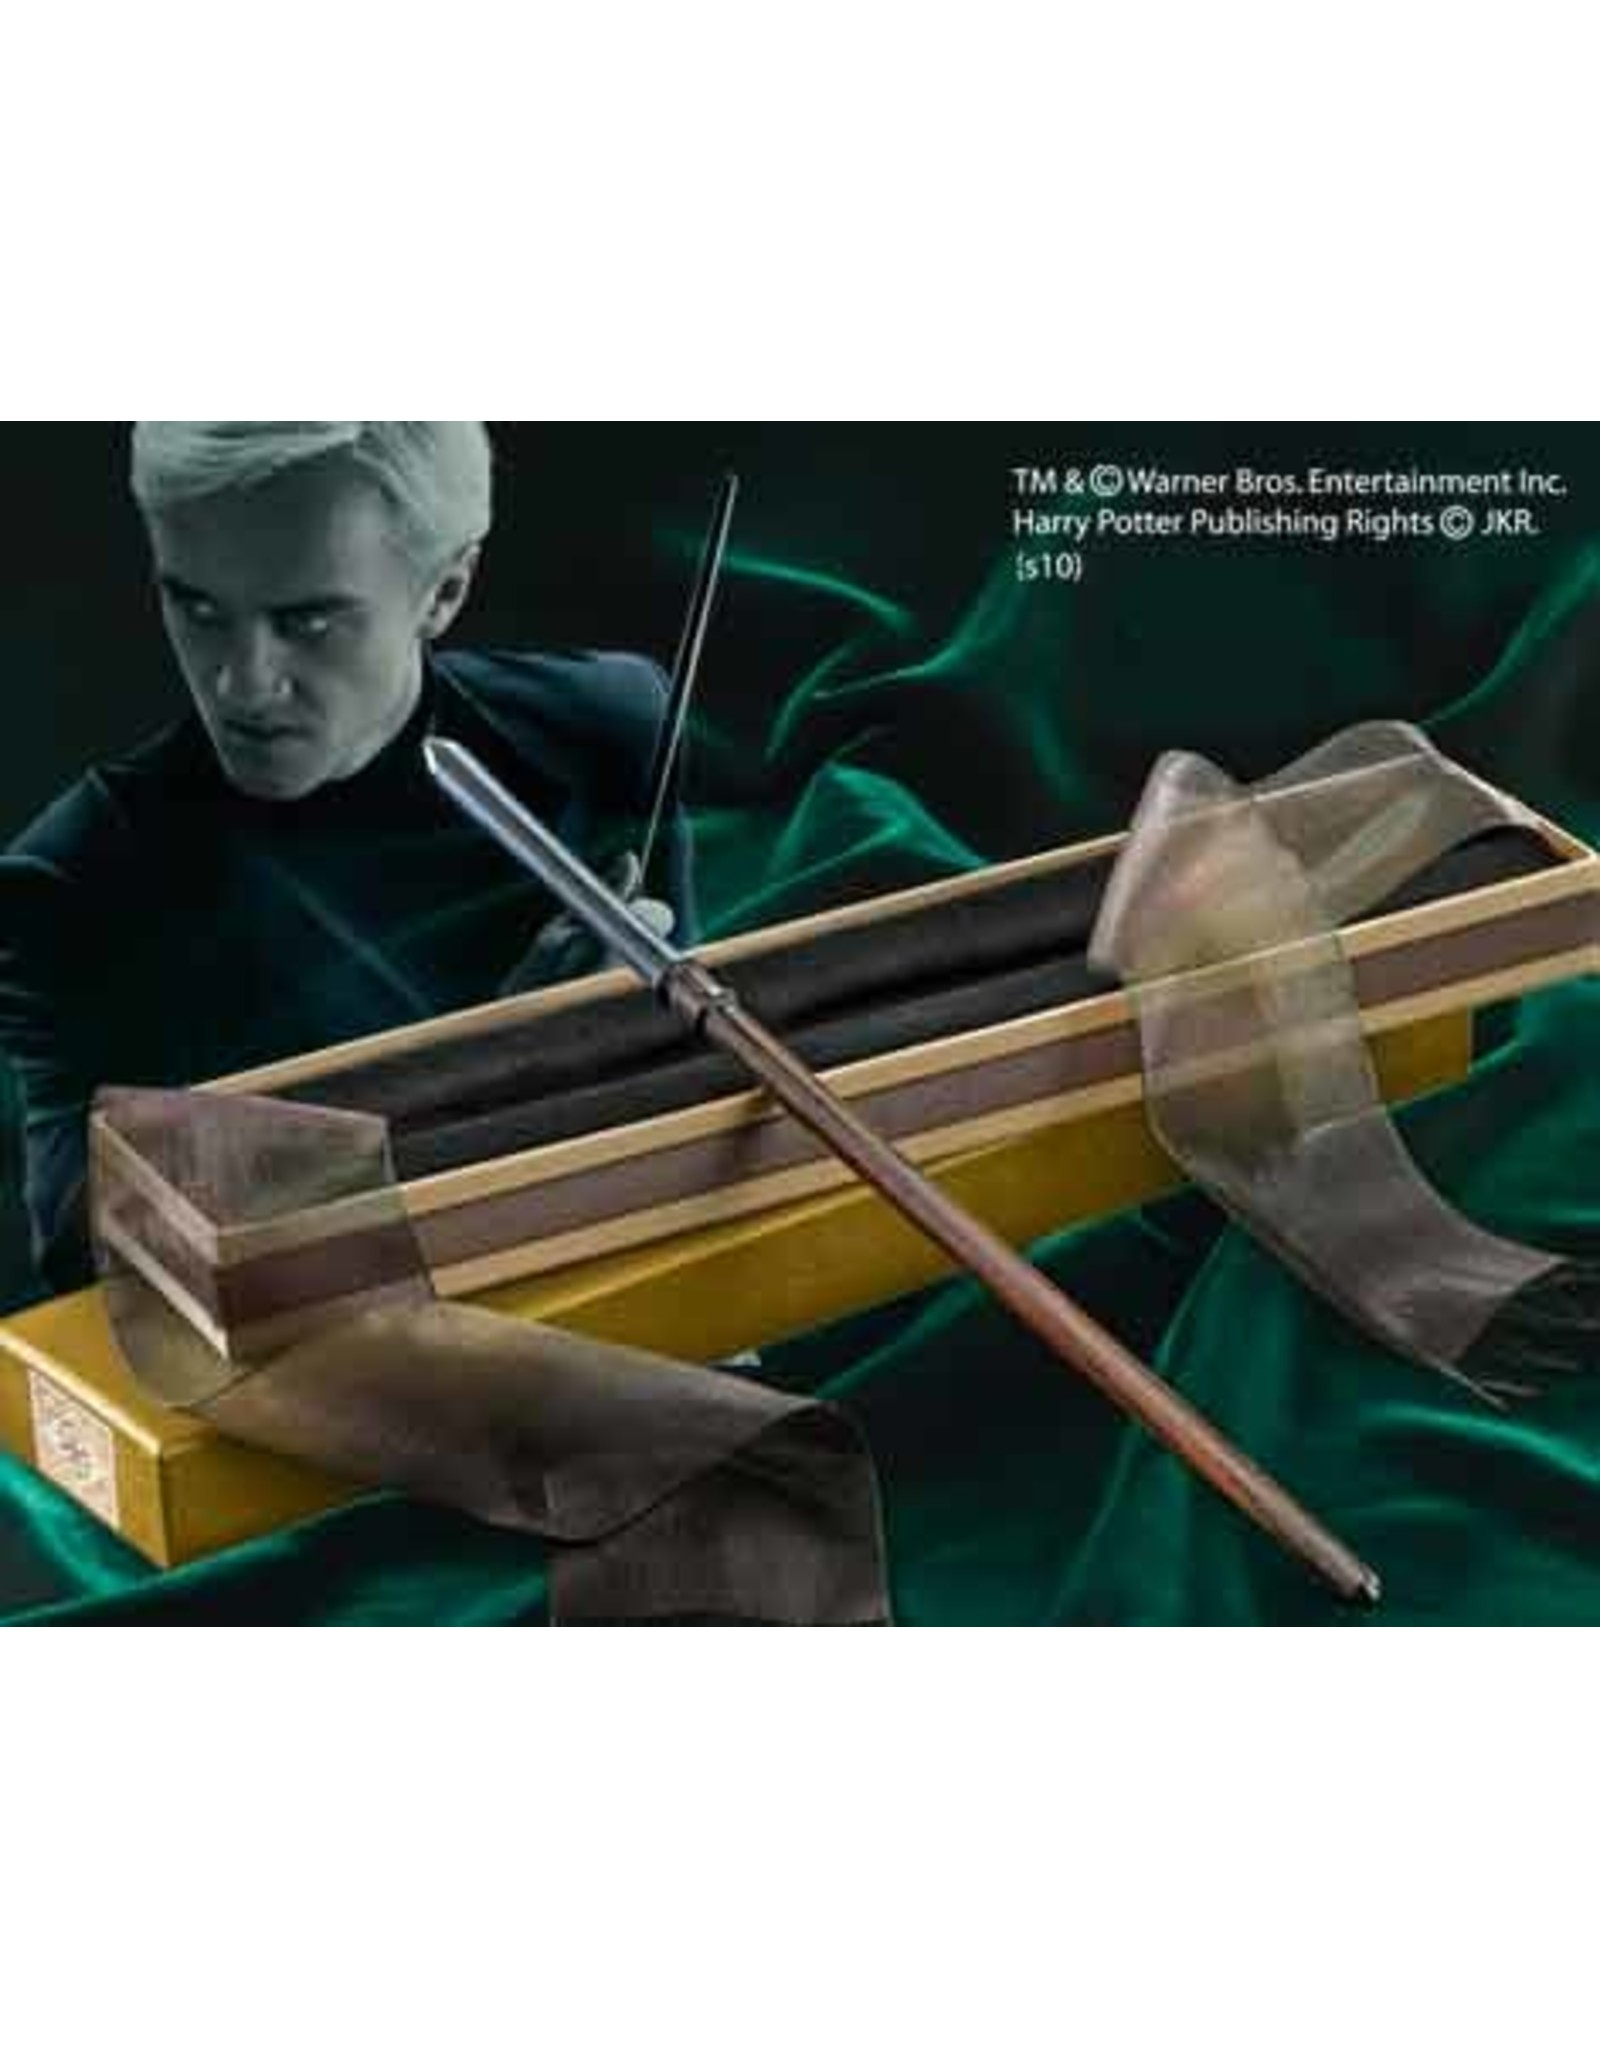 Noble Collection HARRY POTTER Ollivander Wand - Draco Malfoy